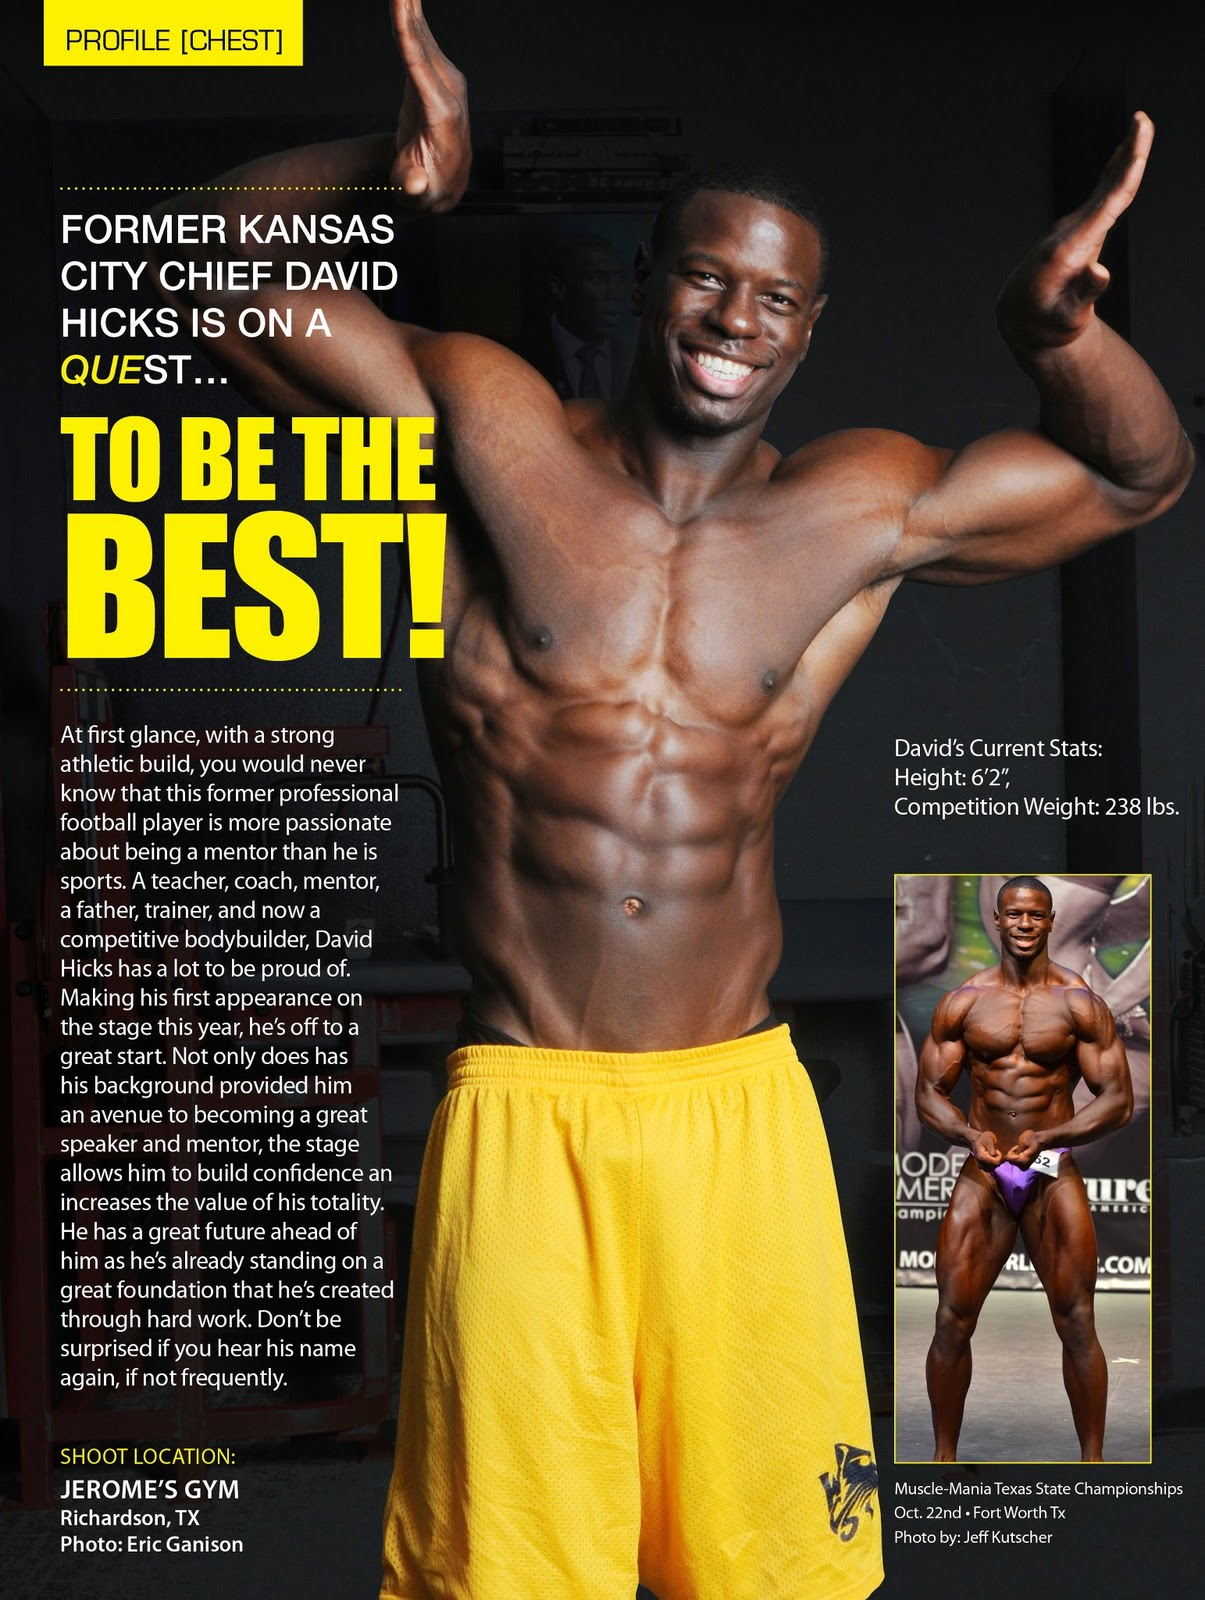 9c69c4d3 Natural Texas bodybuilder David Hicks is a bruiser on stage. The former NFL  Kansas City Chiefs football player switched to bodybuilding after getting a  ...